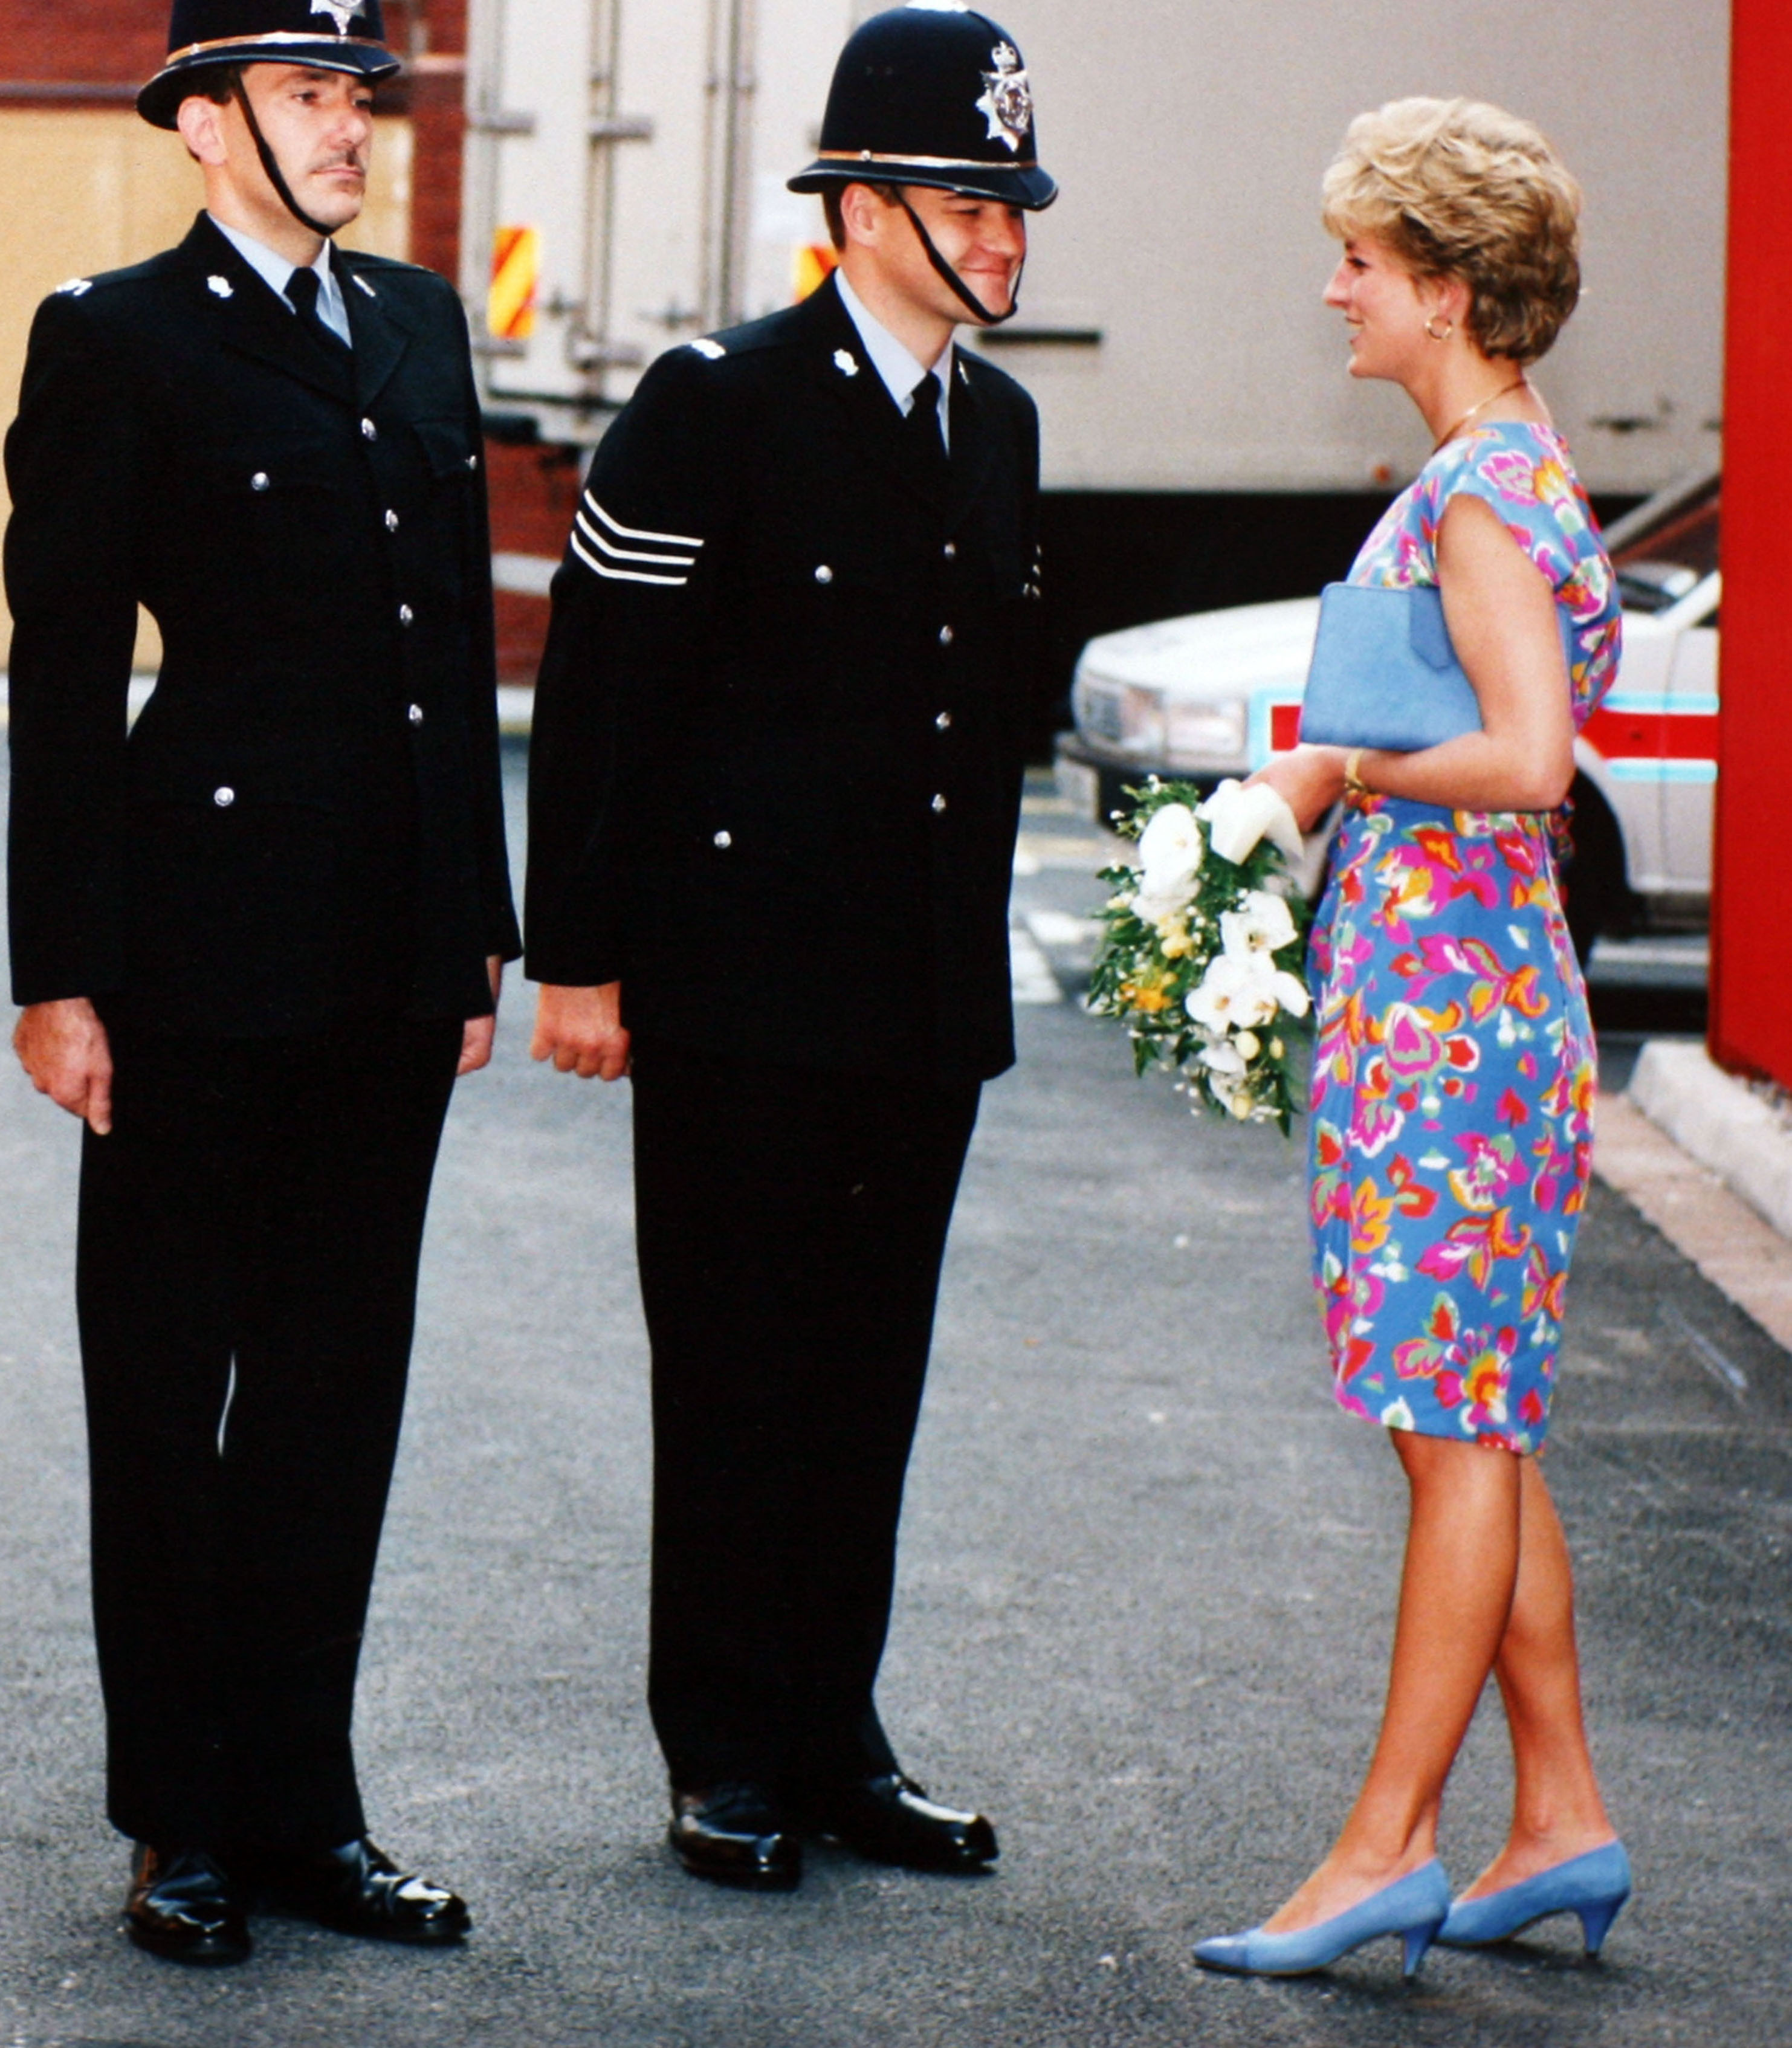 Princess Diana talking to officers